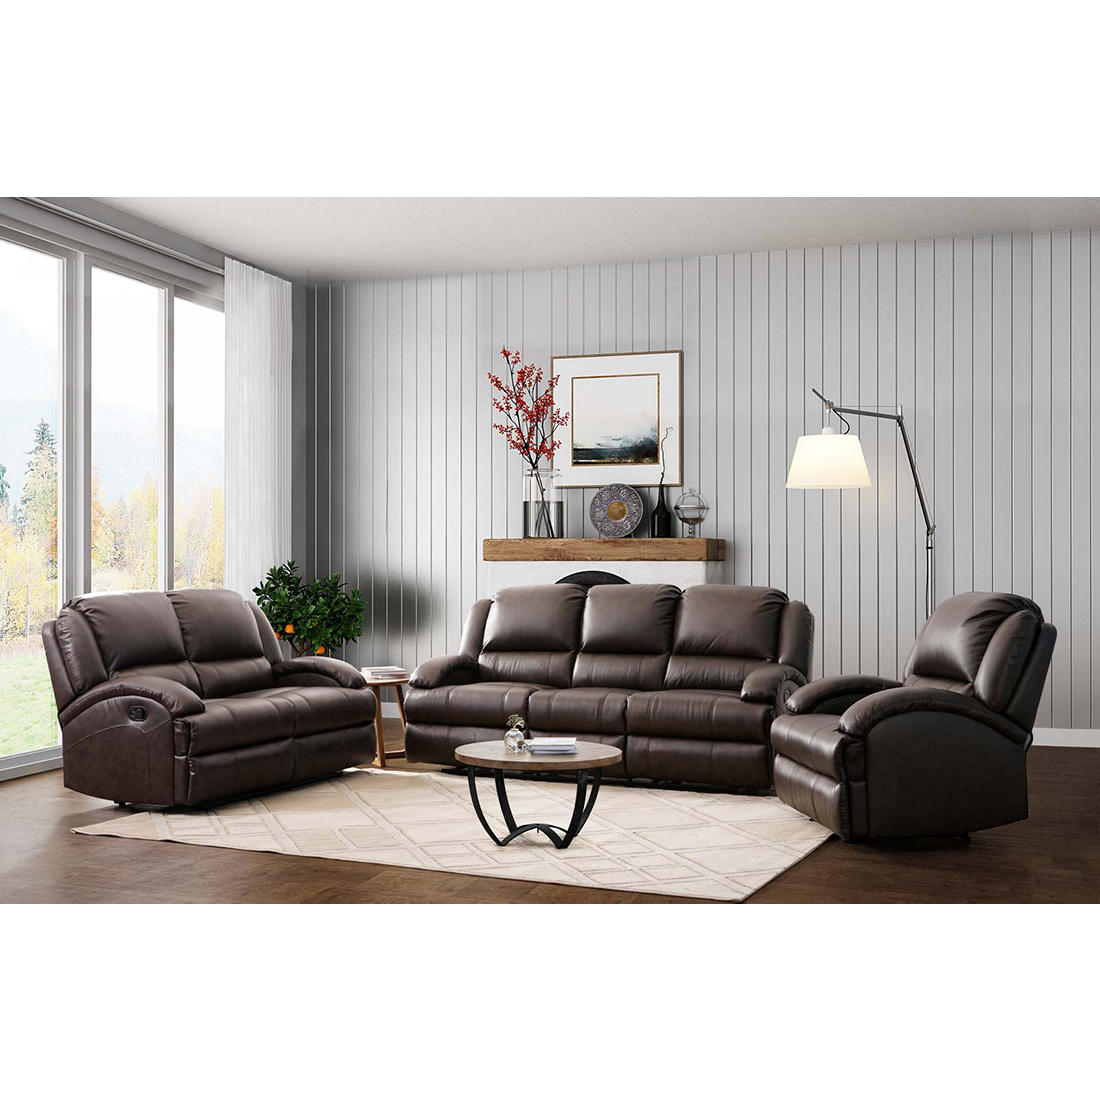 Admirable Abbyson Leather Sofa Reviews Ibusinesslaw Wood Chair Design Ideas Ibusinesslaworg